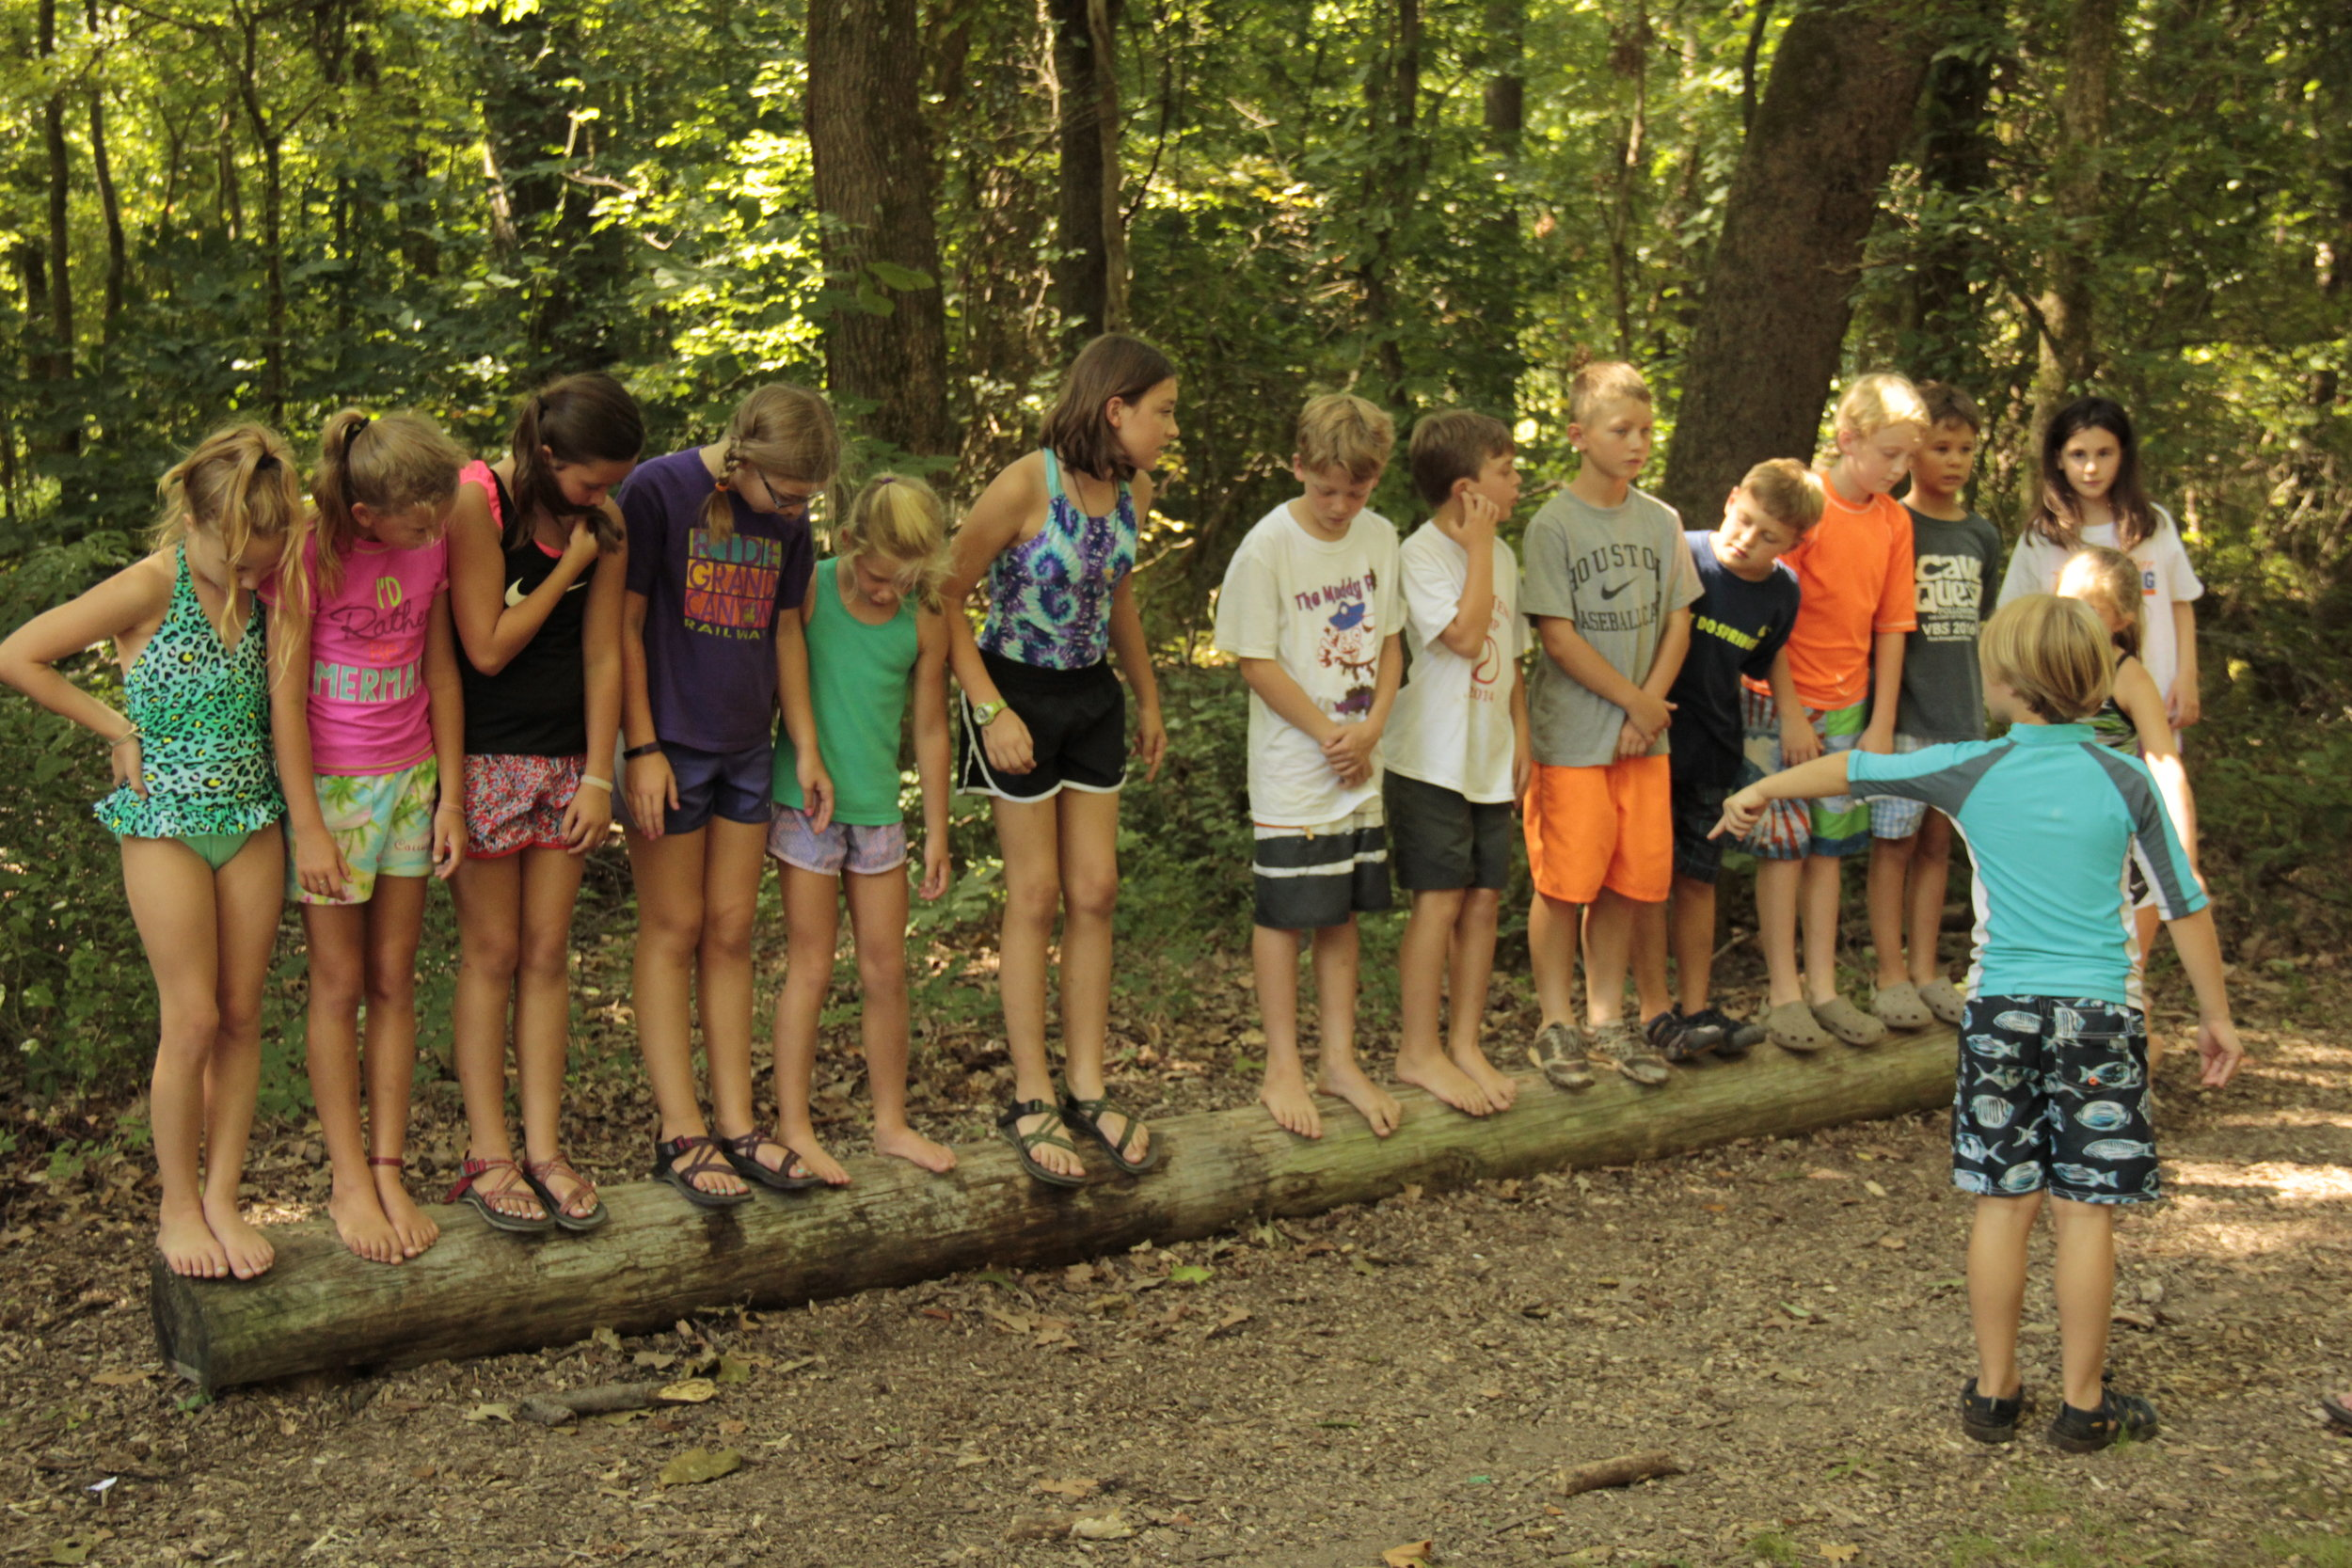 Communication and leadership on the Teepee Shuffle